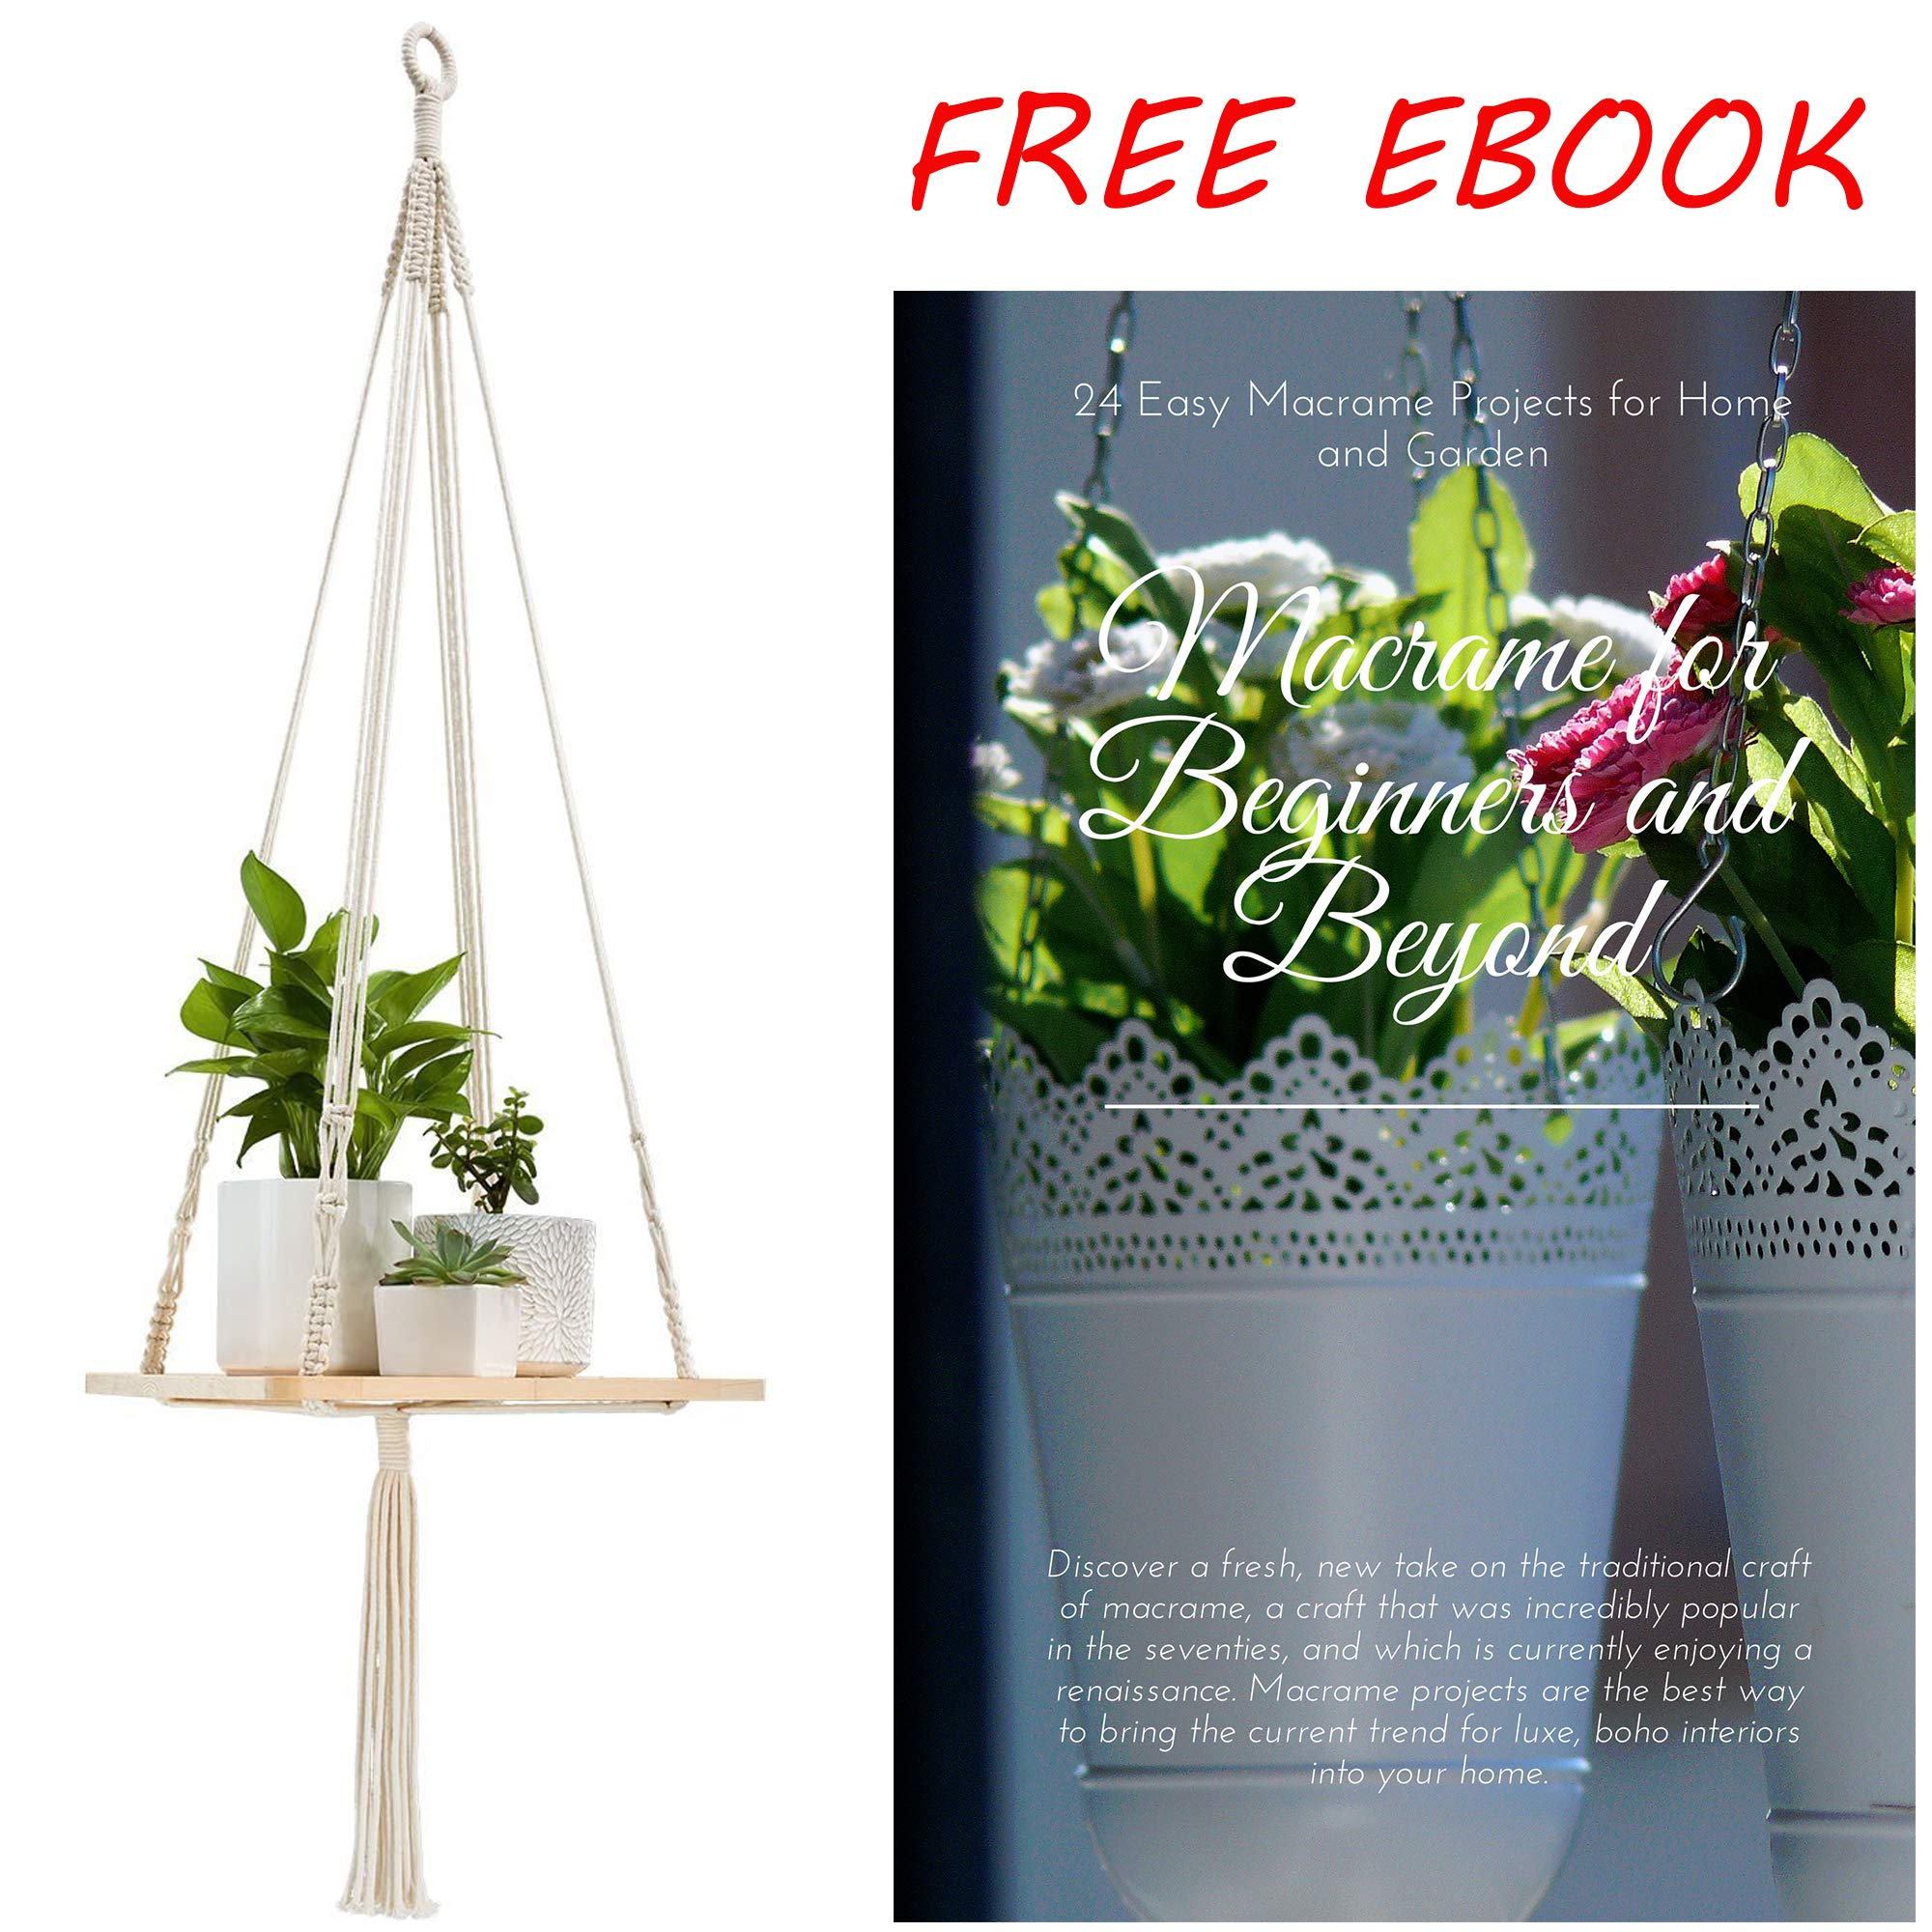 Shelf Hanging Planter Plant Hanger – Unique, Strong, and Durable Indoor Wall Planter – Ideal Wall Hanging Planters for Small Indoor and Outdoor Plants, Vases, Books by Canpino